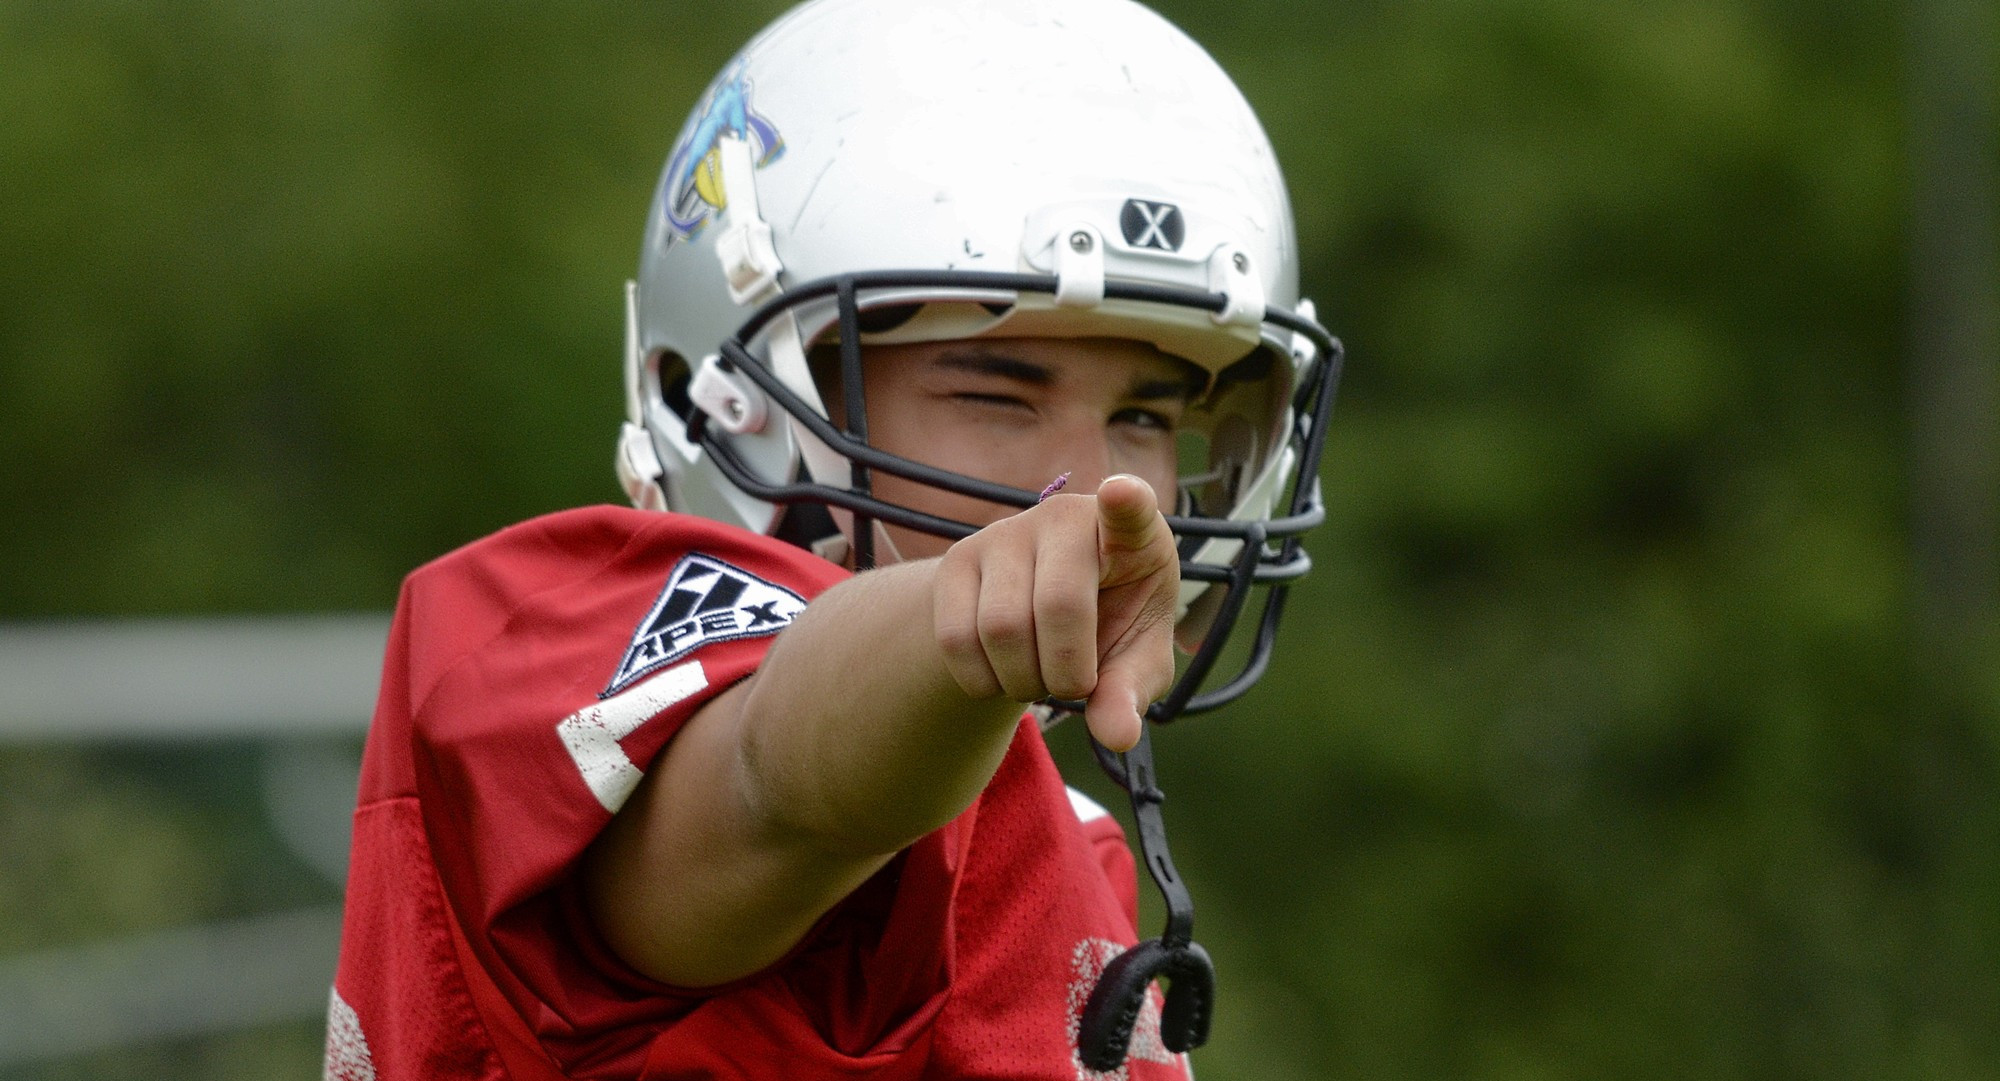 Tackle Football Junioren U19